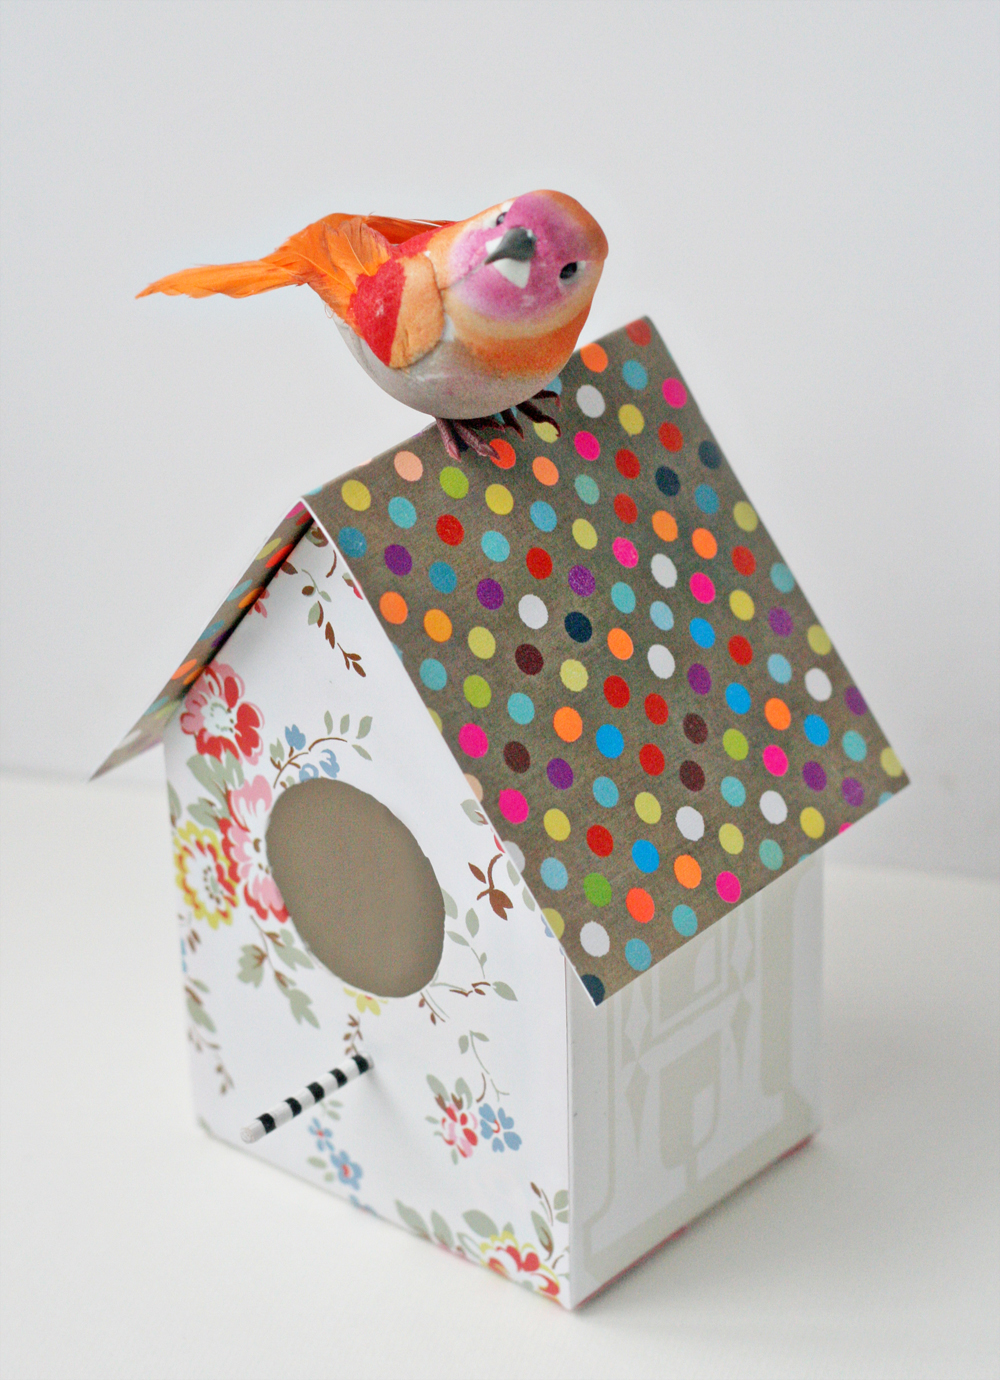 Paper birdhouse decoration (from Paperie 100 Creative Papercraft Ideas by  Kirsty Neale)